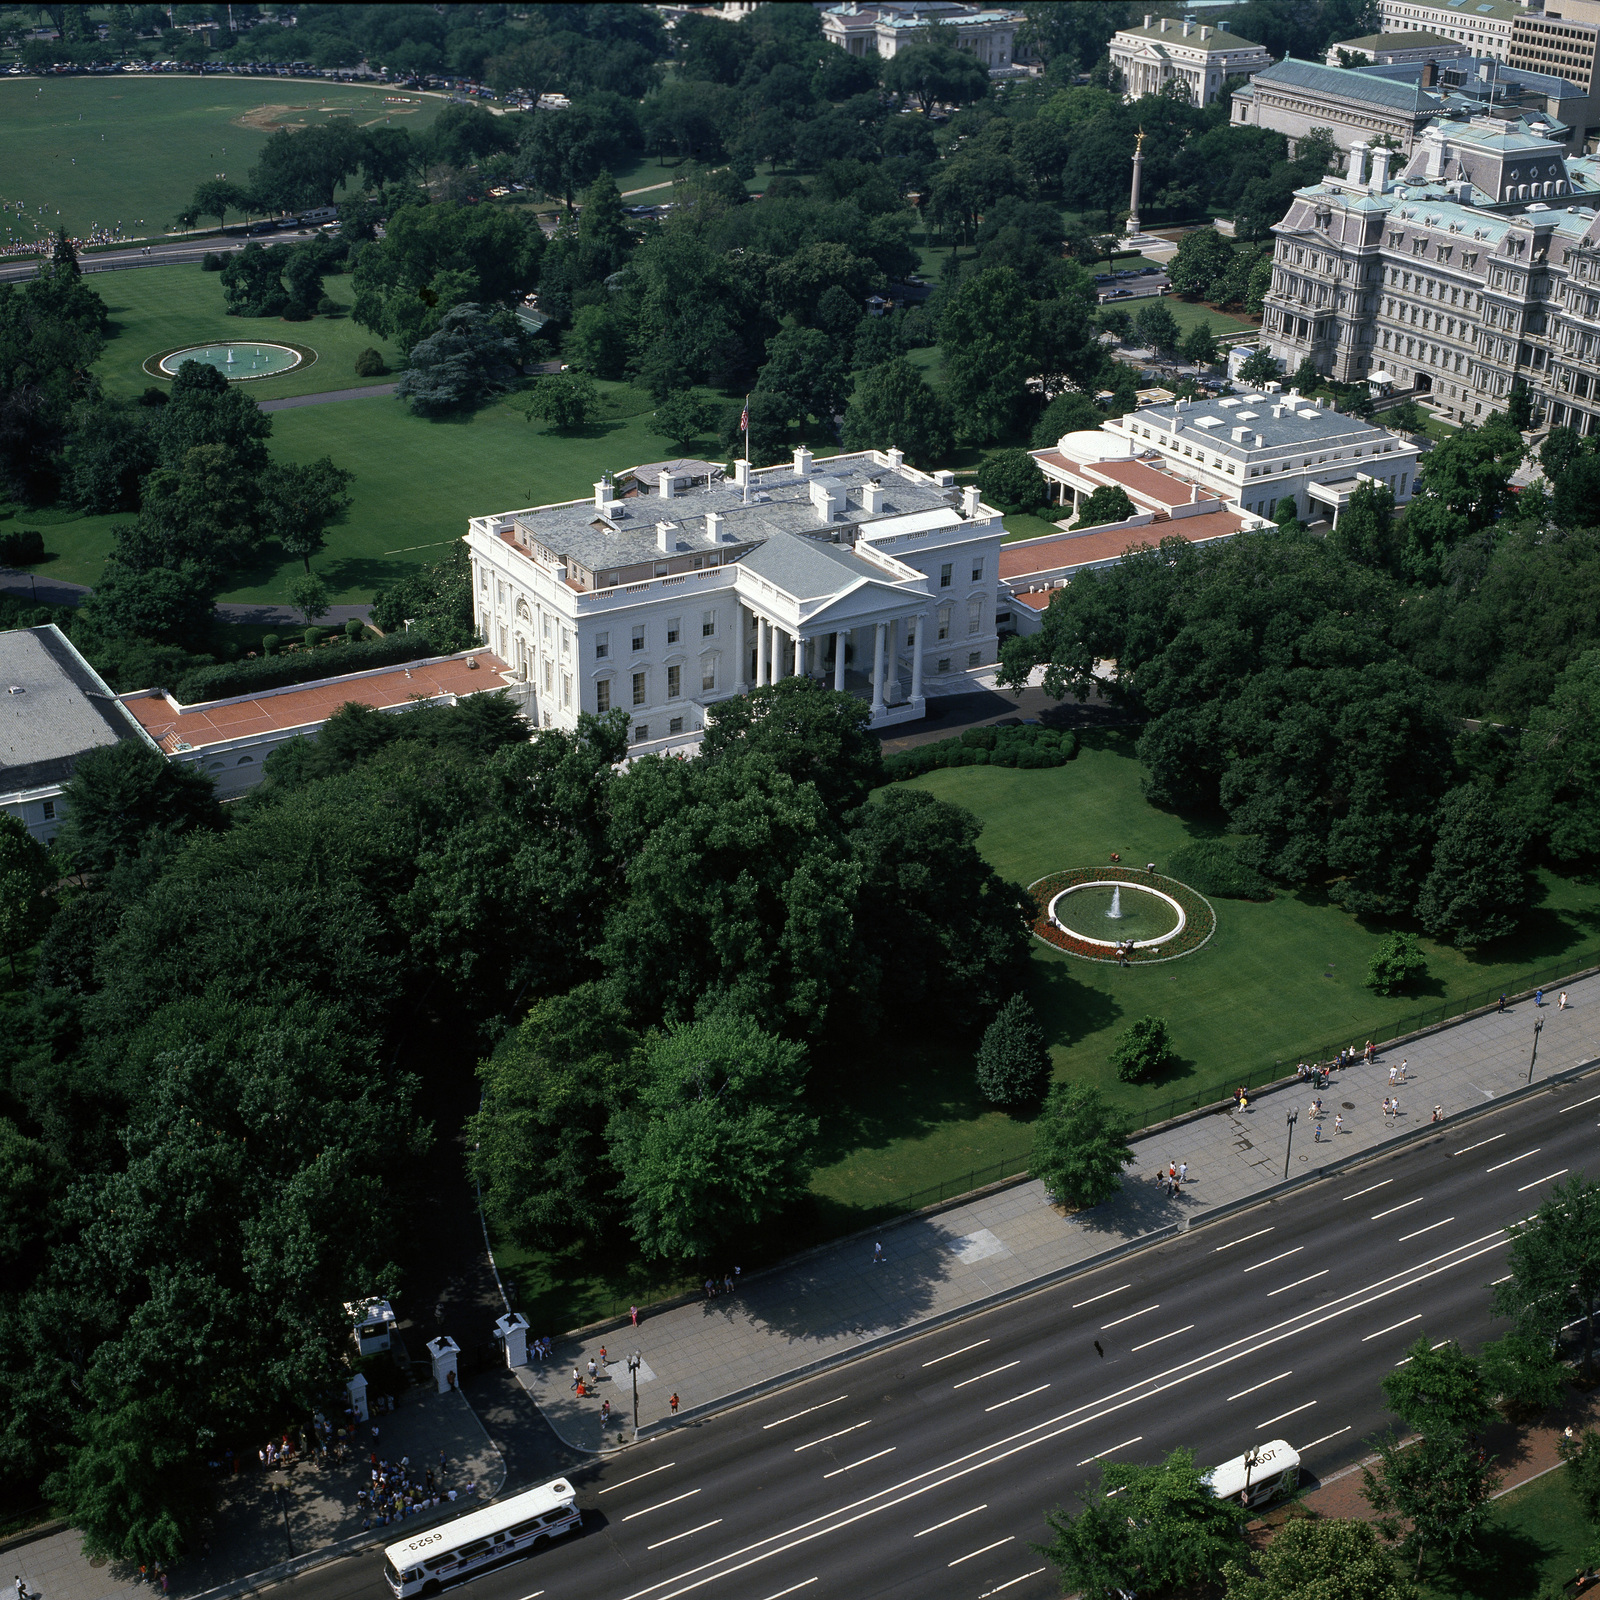 Wondrous An Aerial View Looking Southwest Of The White House The Download Free Architecture Designs Scobabritishbridgeorg